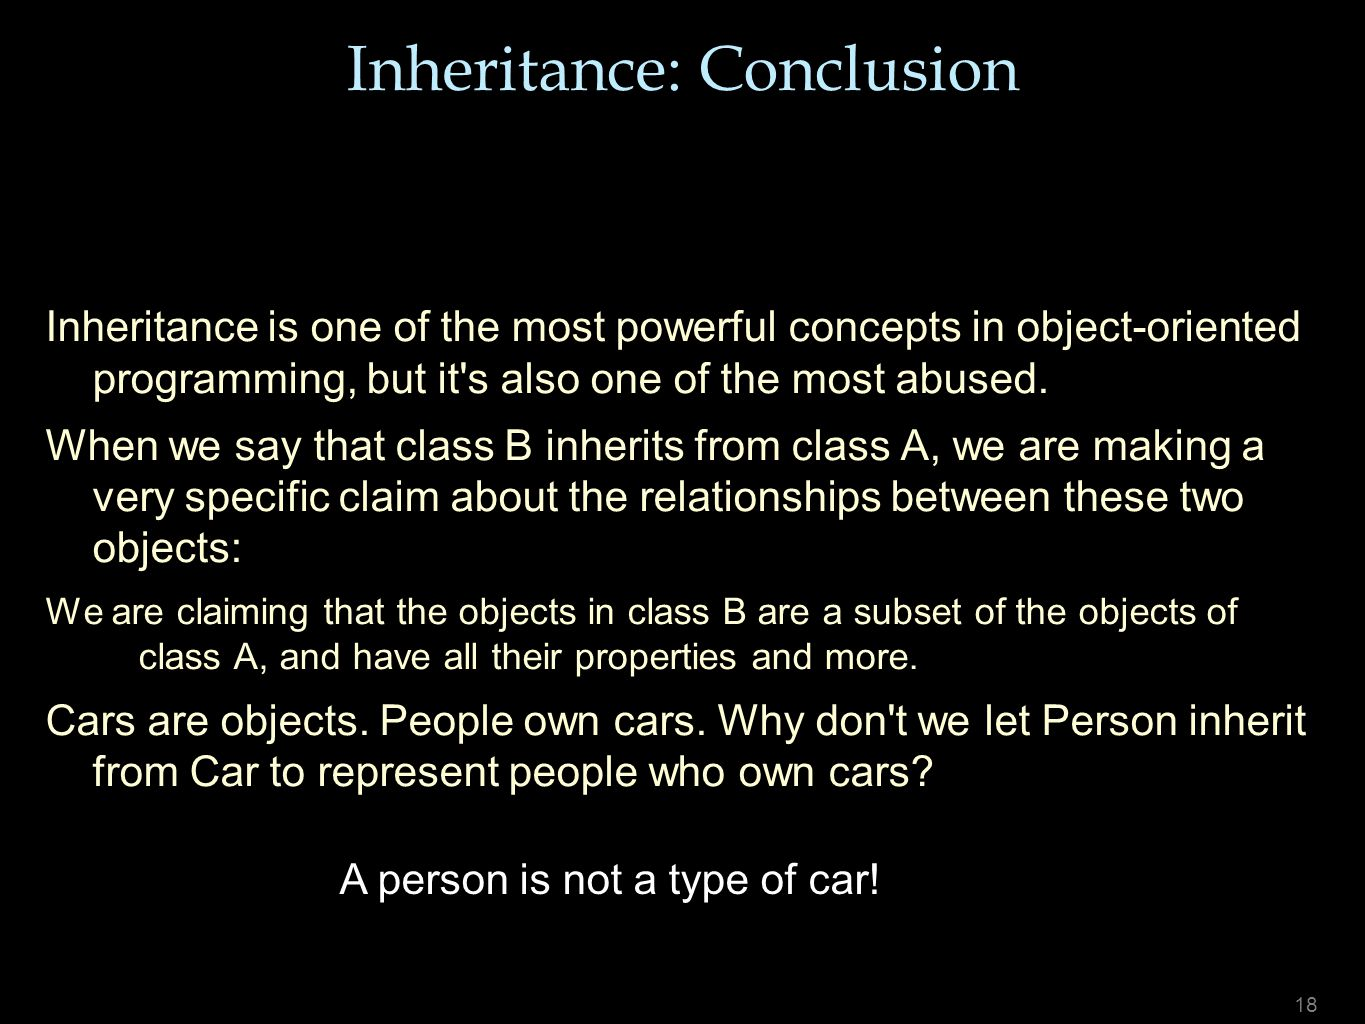 18 Inheritance: Conclusion Inheritance is one of the most powerful concepts in object-oriented programming, but it's also one of the most abused. When